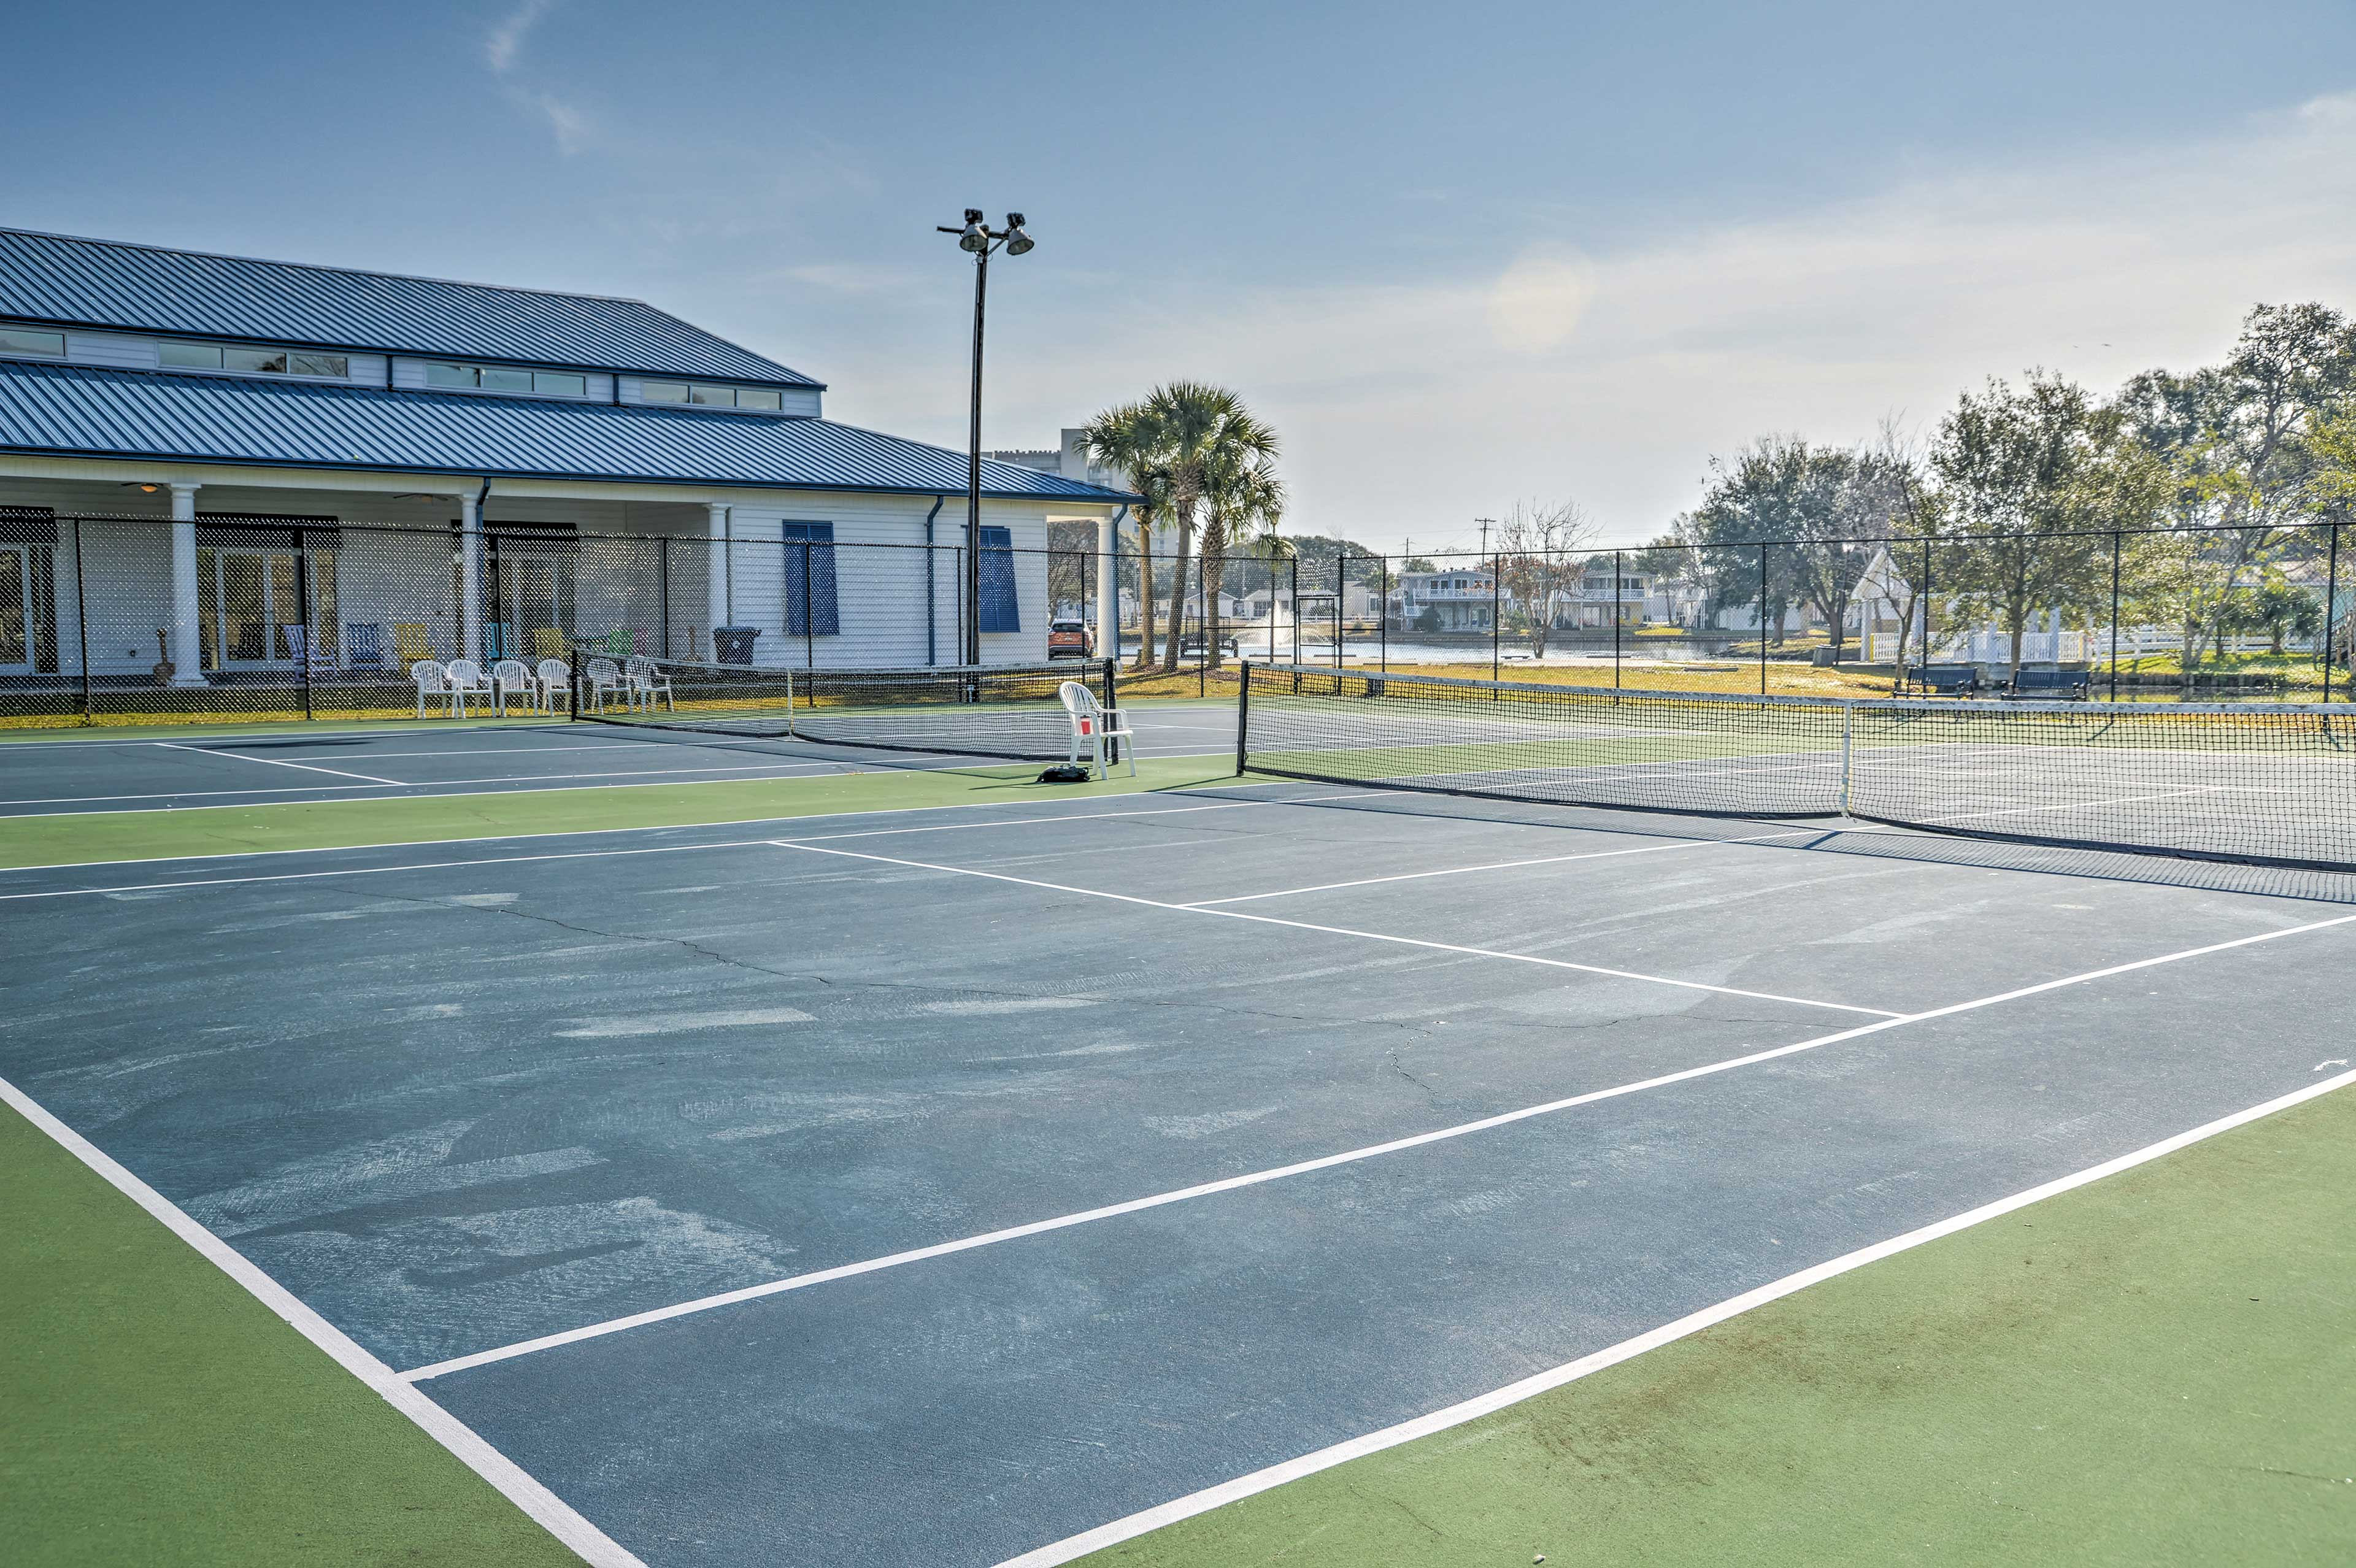 Play a friendly game of tennis at the tennis courts!